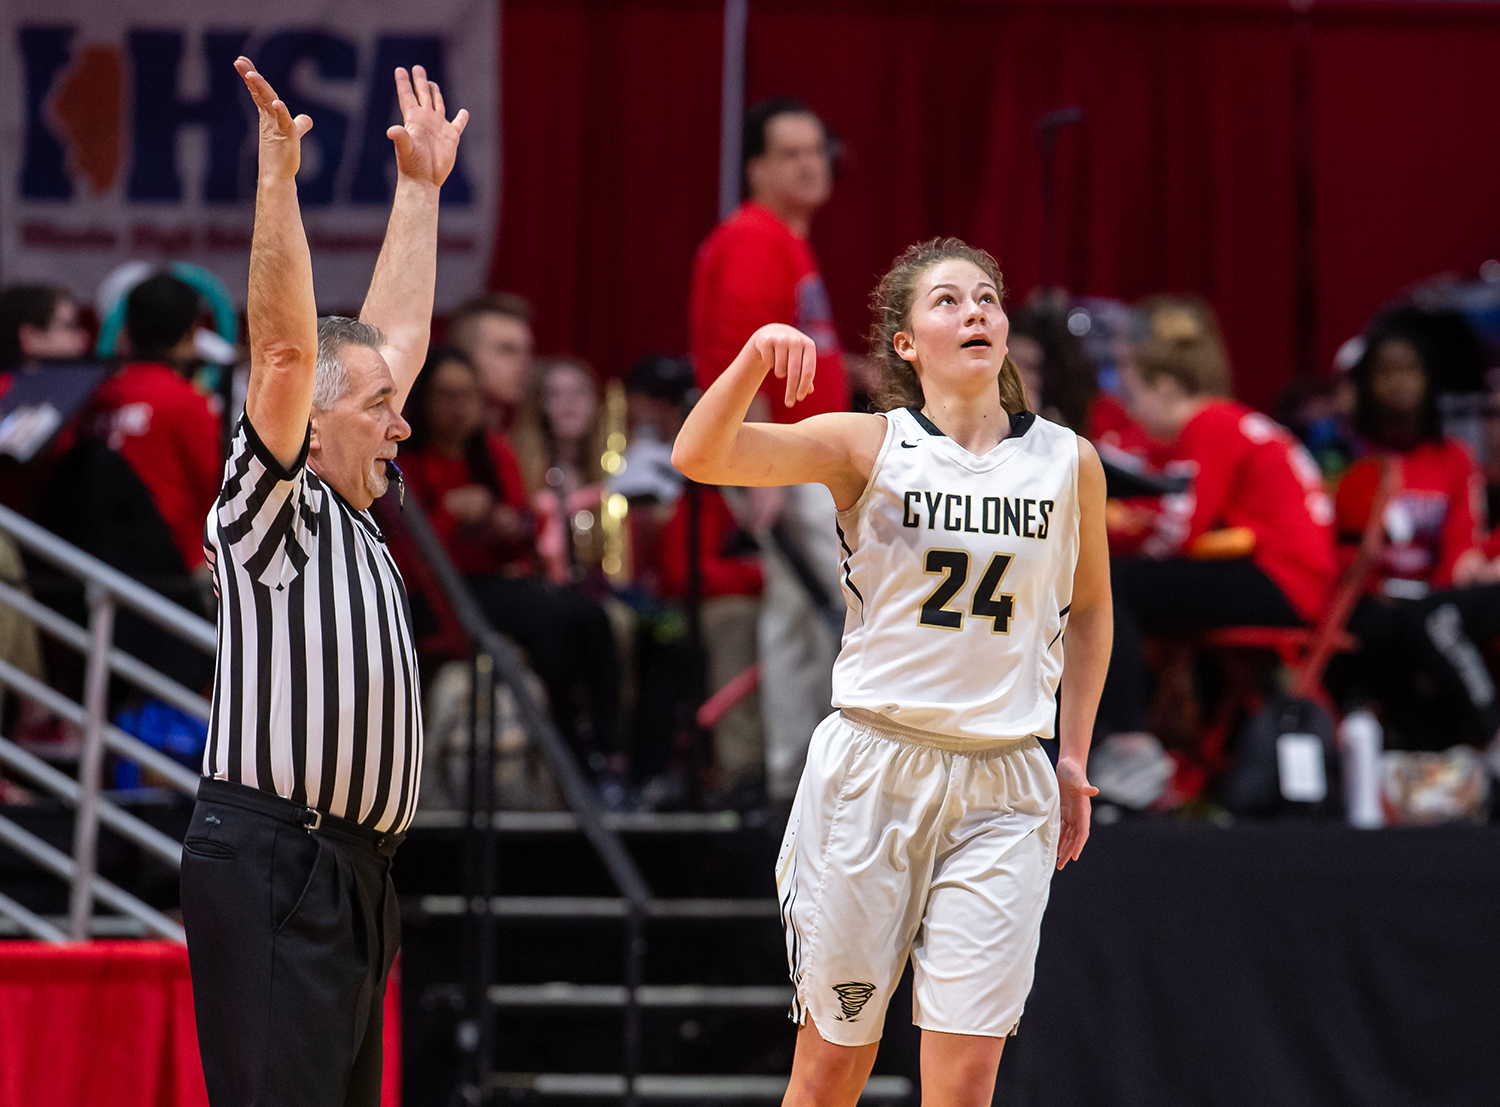 Sacred Heart-Griffin's Sofie Lowis (24) reacts after hitting a 3-pointer against Glen Ellyn Glenbard South in the first quarter during the IHSA Class 3A State Tournament semifinals at Redbird Arena, Friday, March 1, 2019, in Normal, Ill. [Justin L. Fowler/The State Journal-Register]